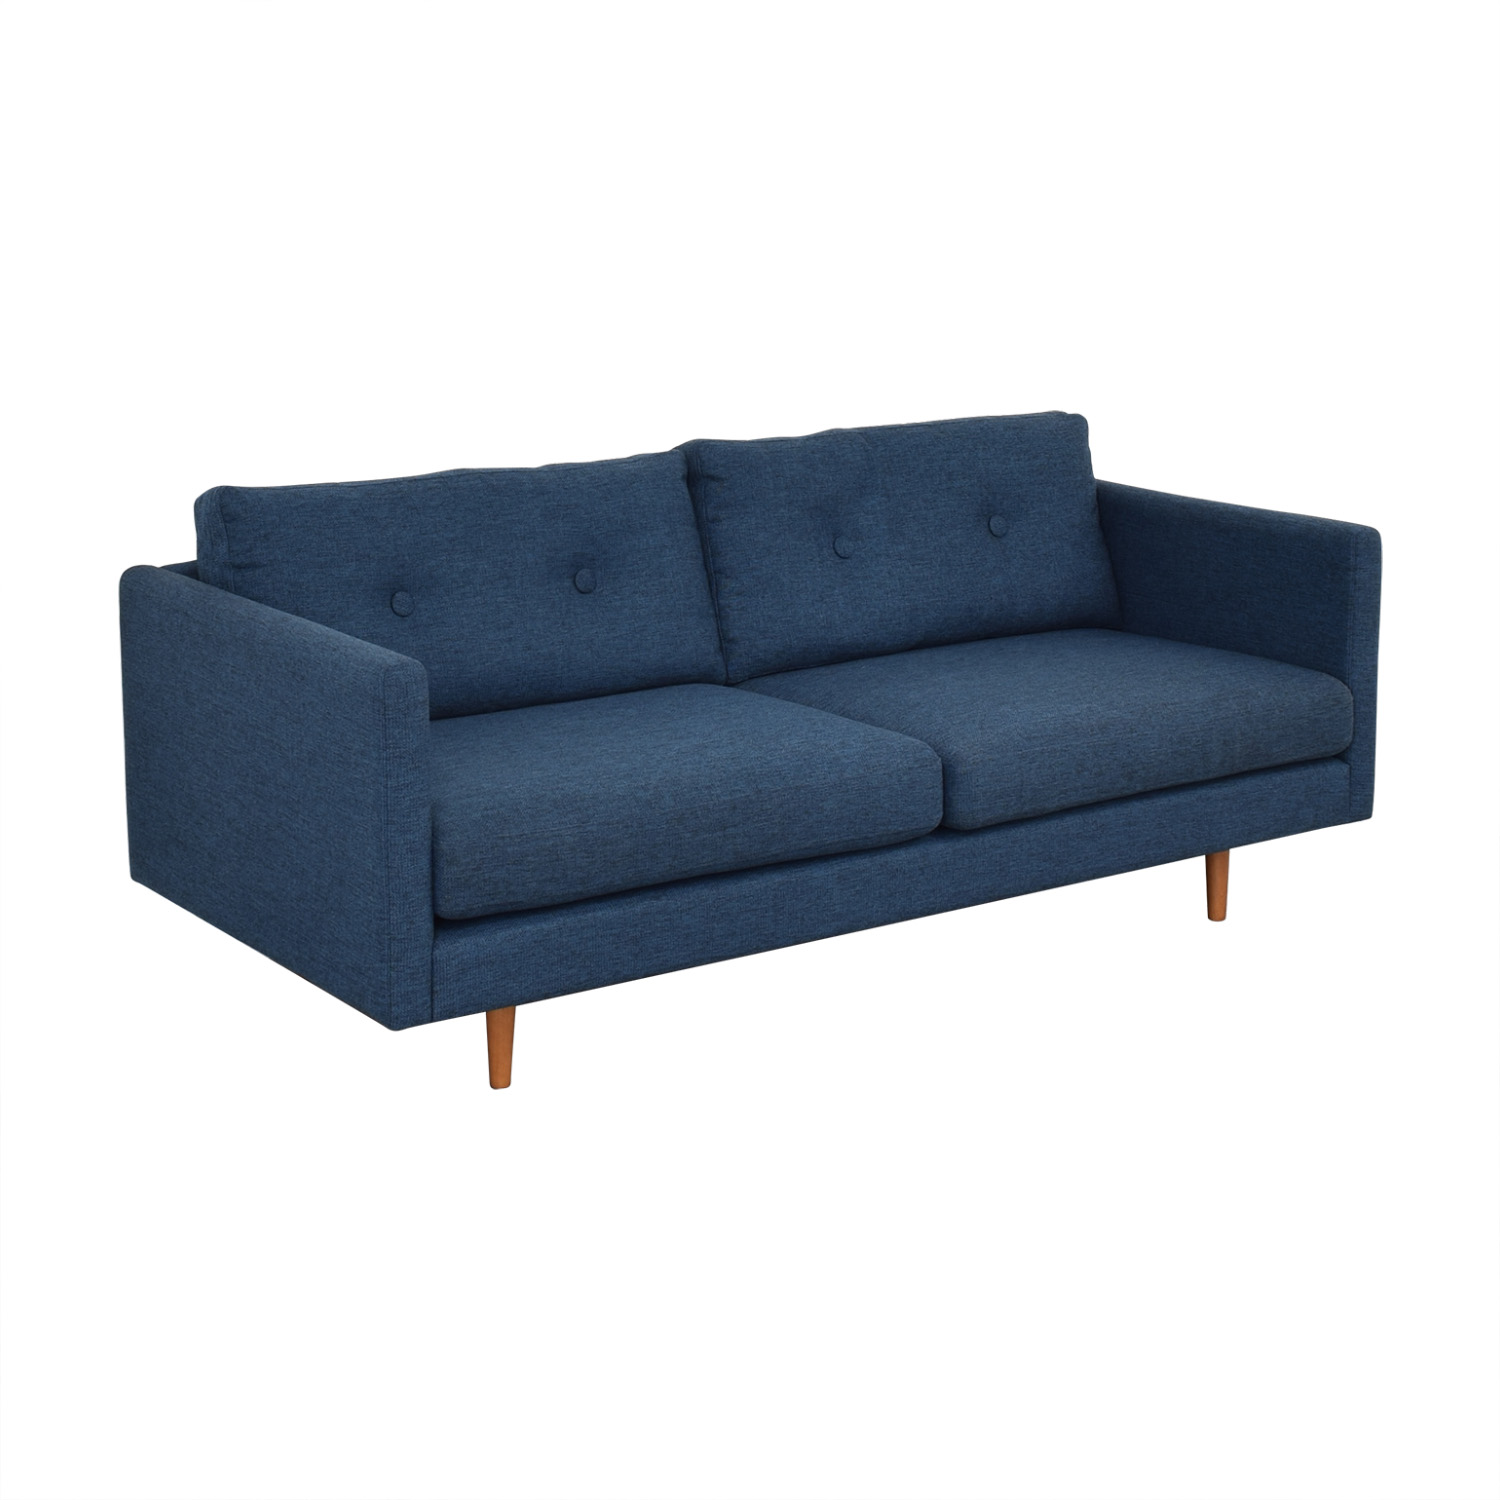 Article Anton Sofa sale